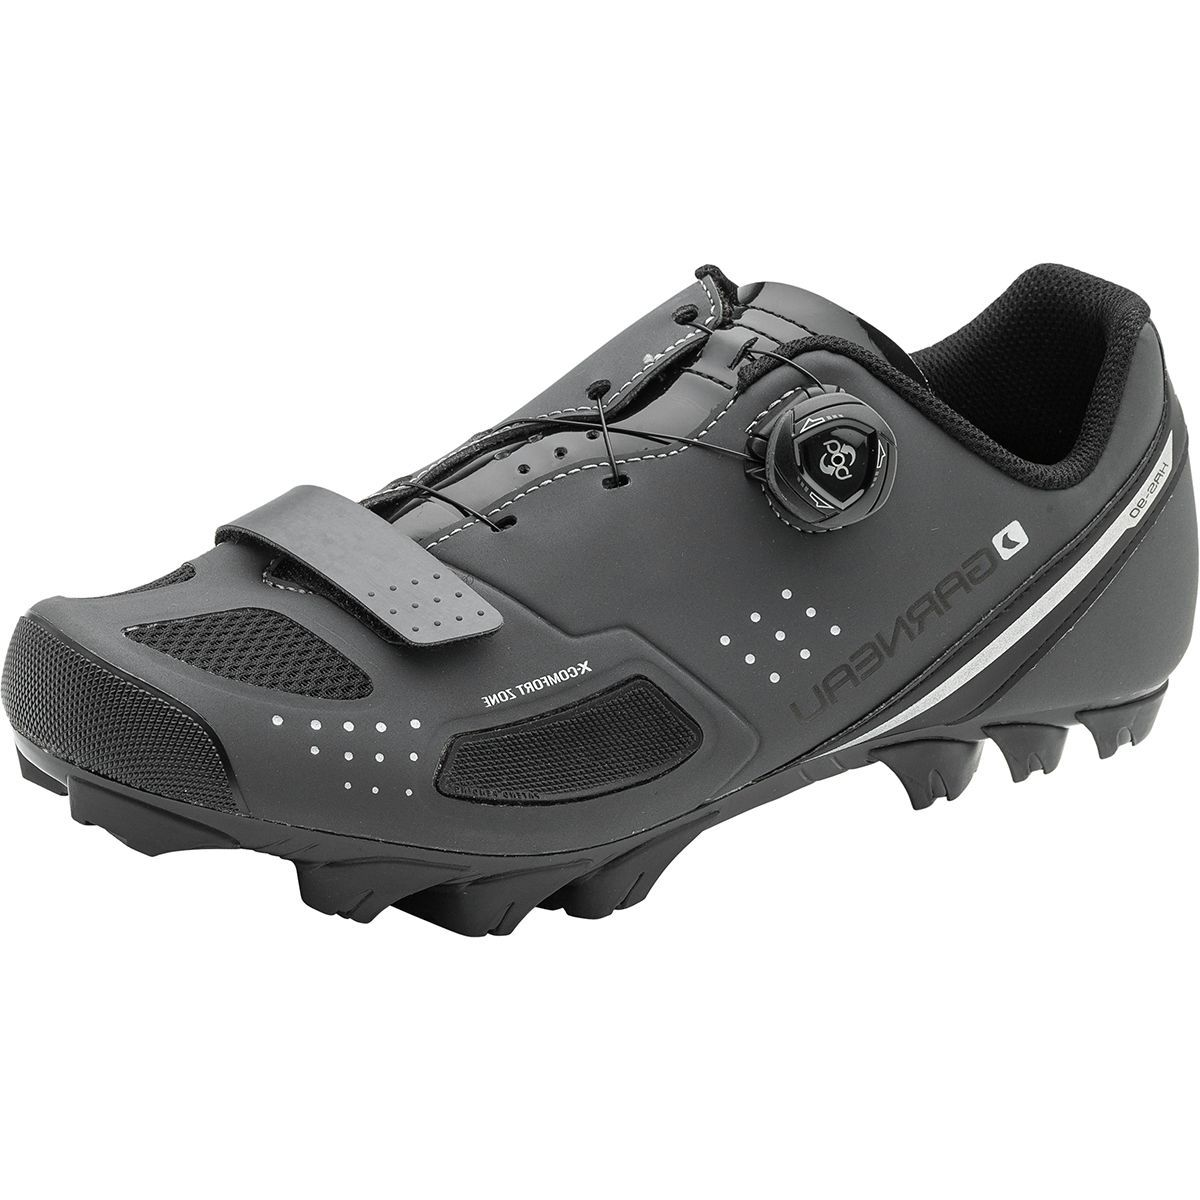 Louis Garneau Granite II Cycling Shoe - Men's